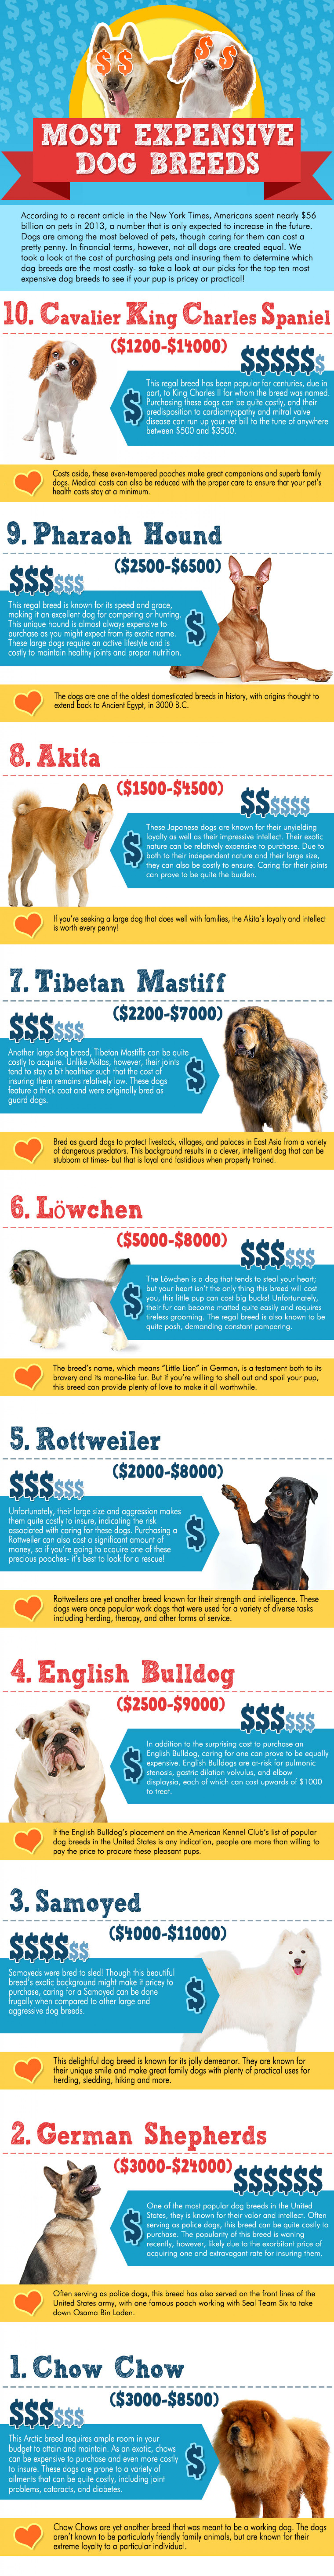 Most Expensive Dog Breeds Infographic Infographic